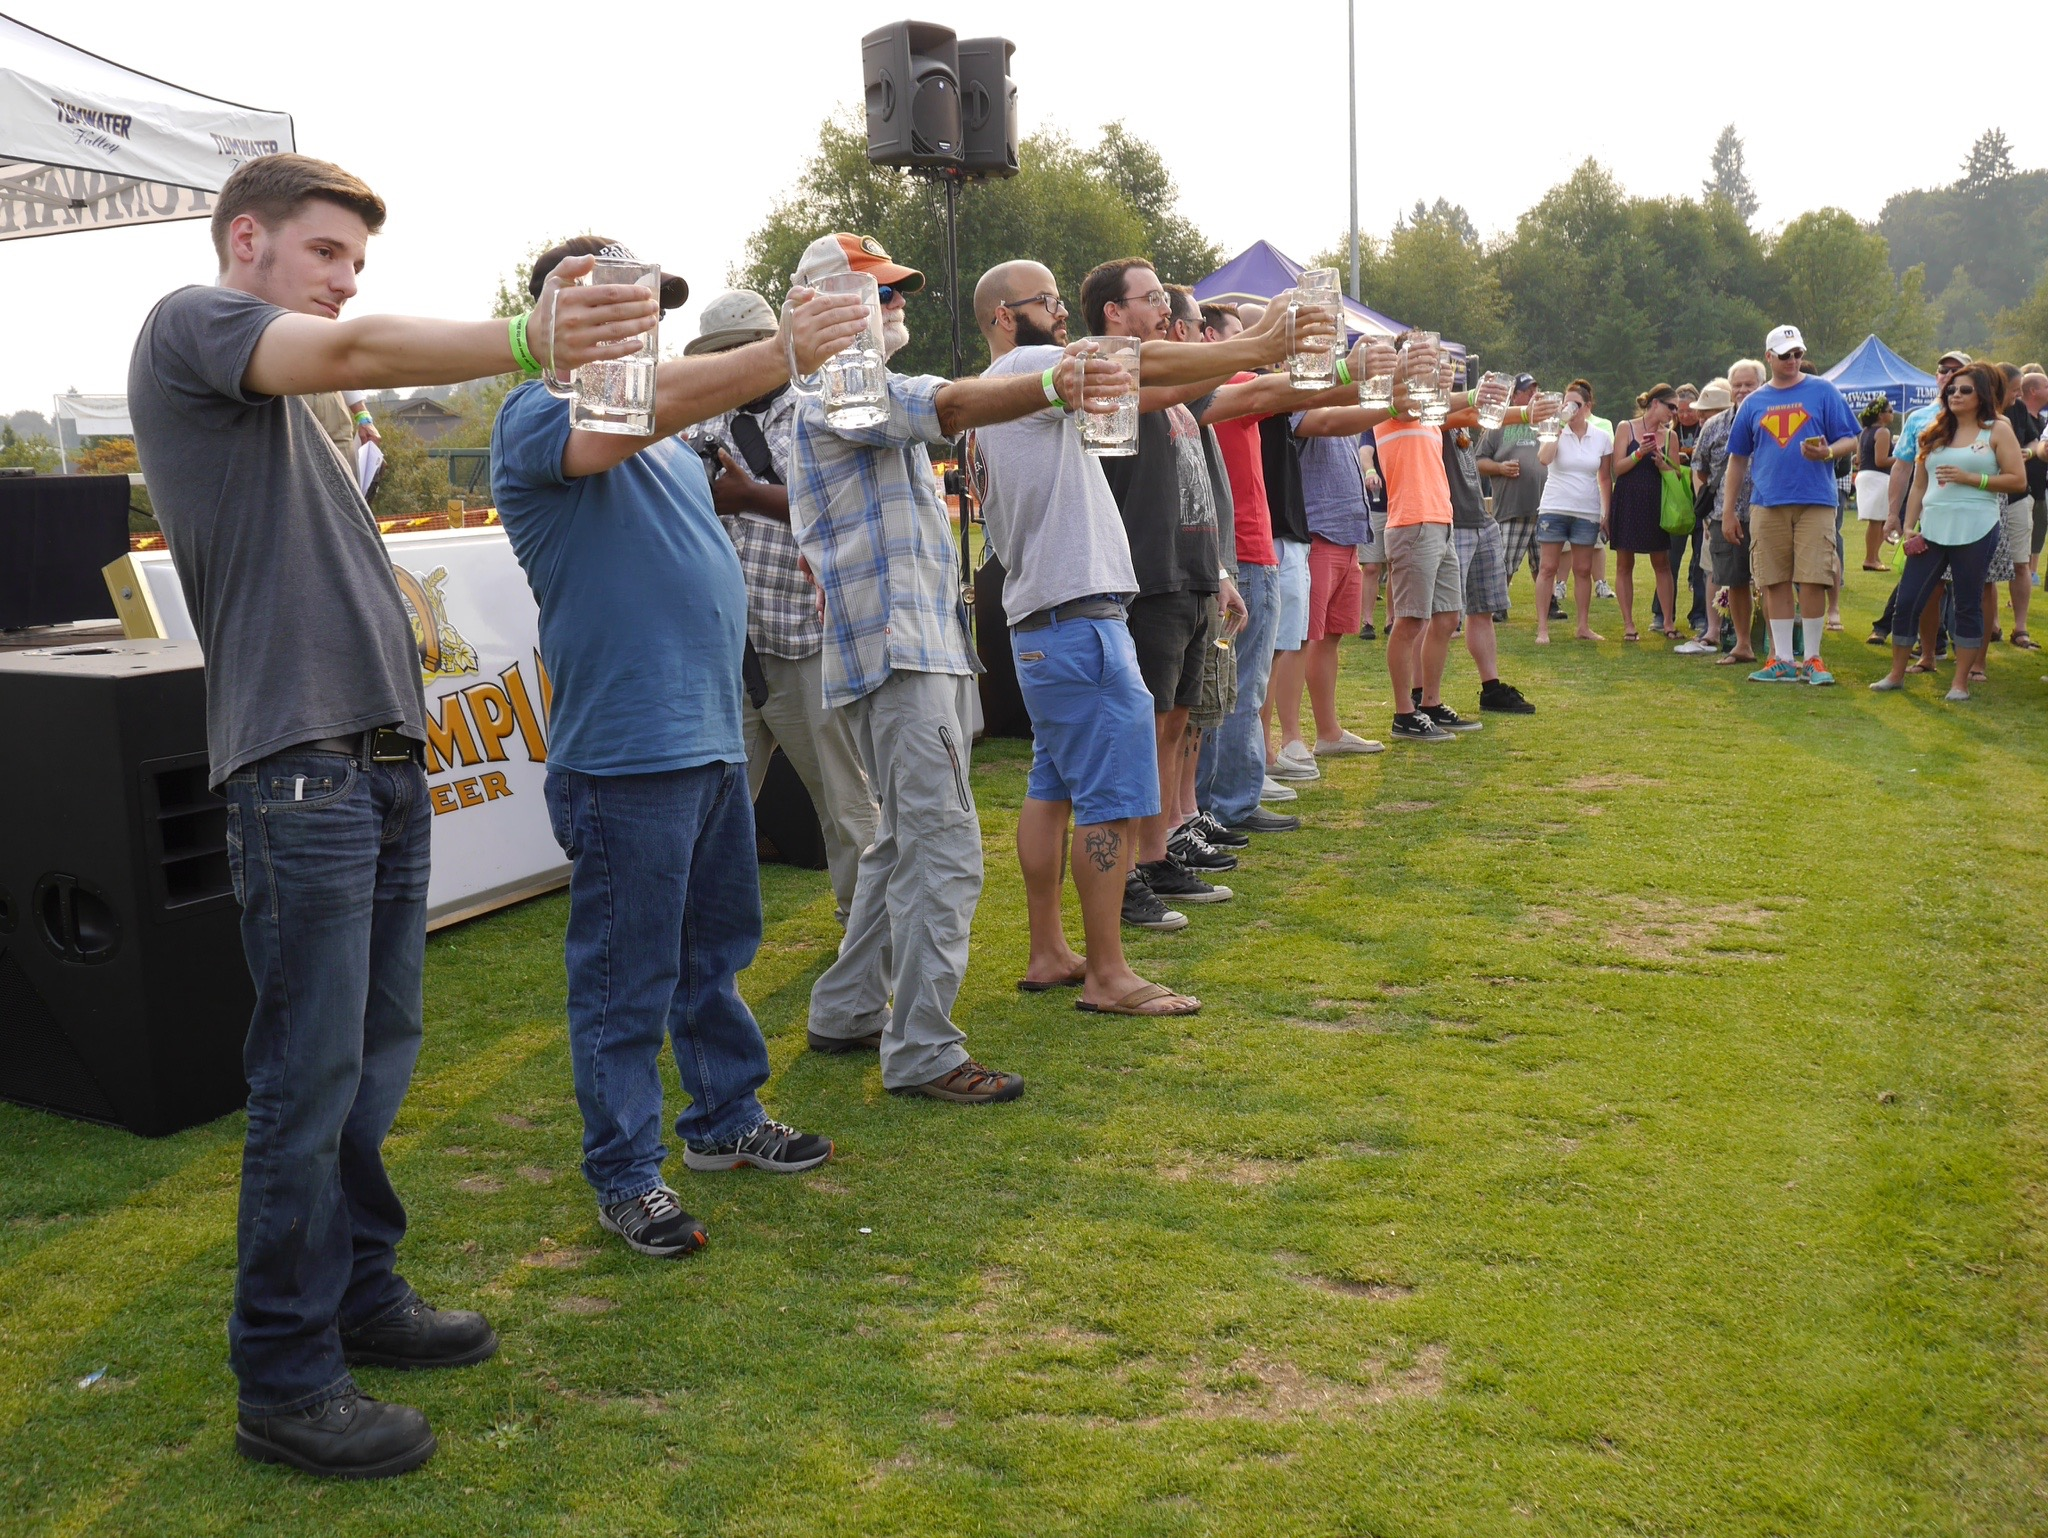 The lineup of participants in the Stein Holiding Contest at the Tumwater Artesian Brewfest. (photo by Cat Stelzer)